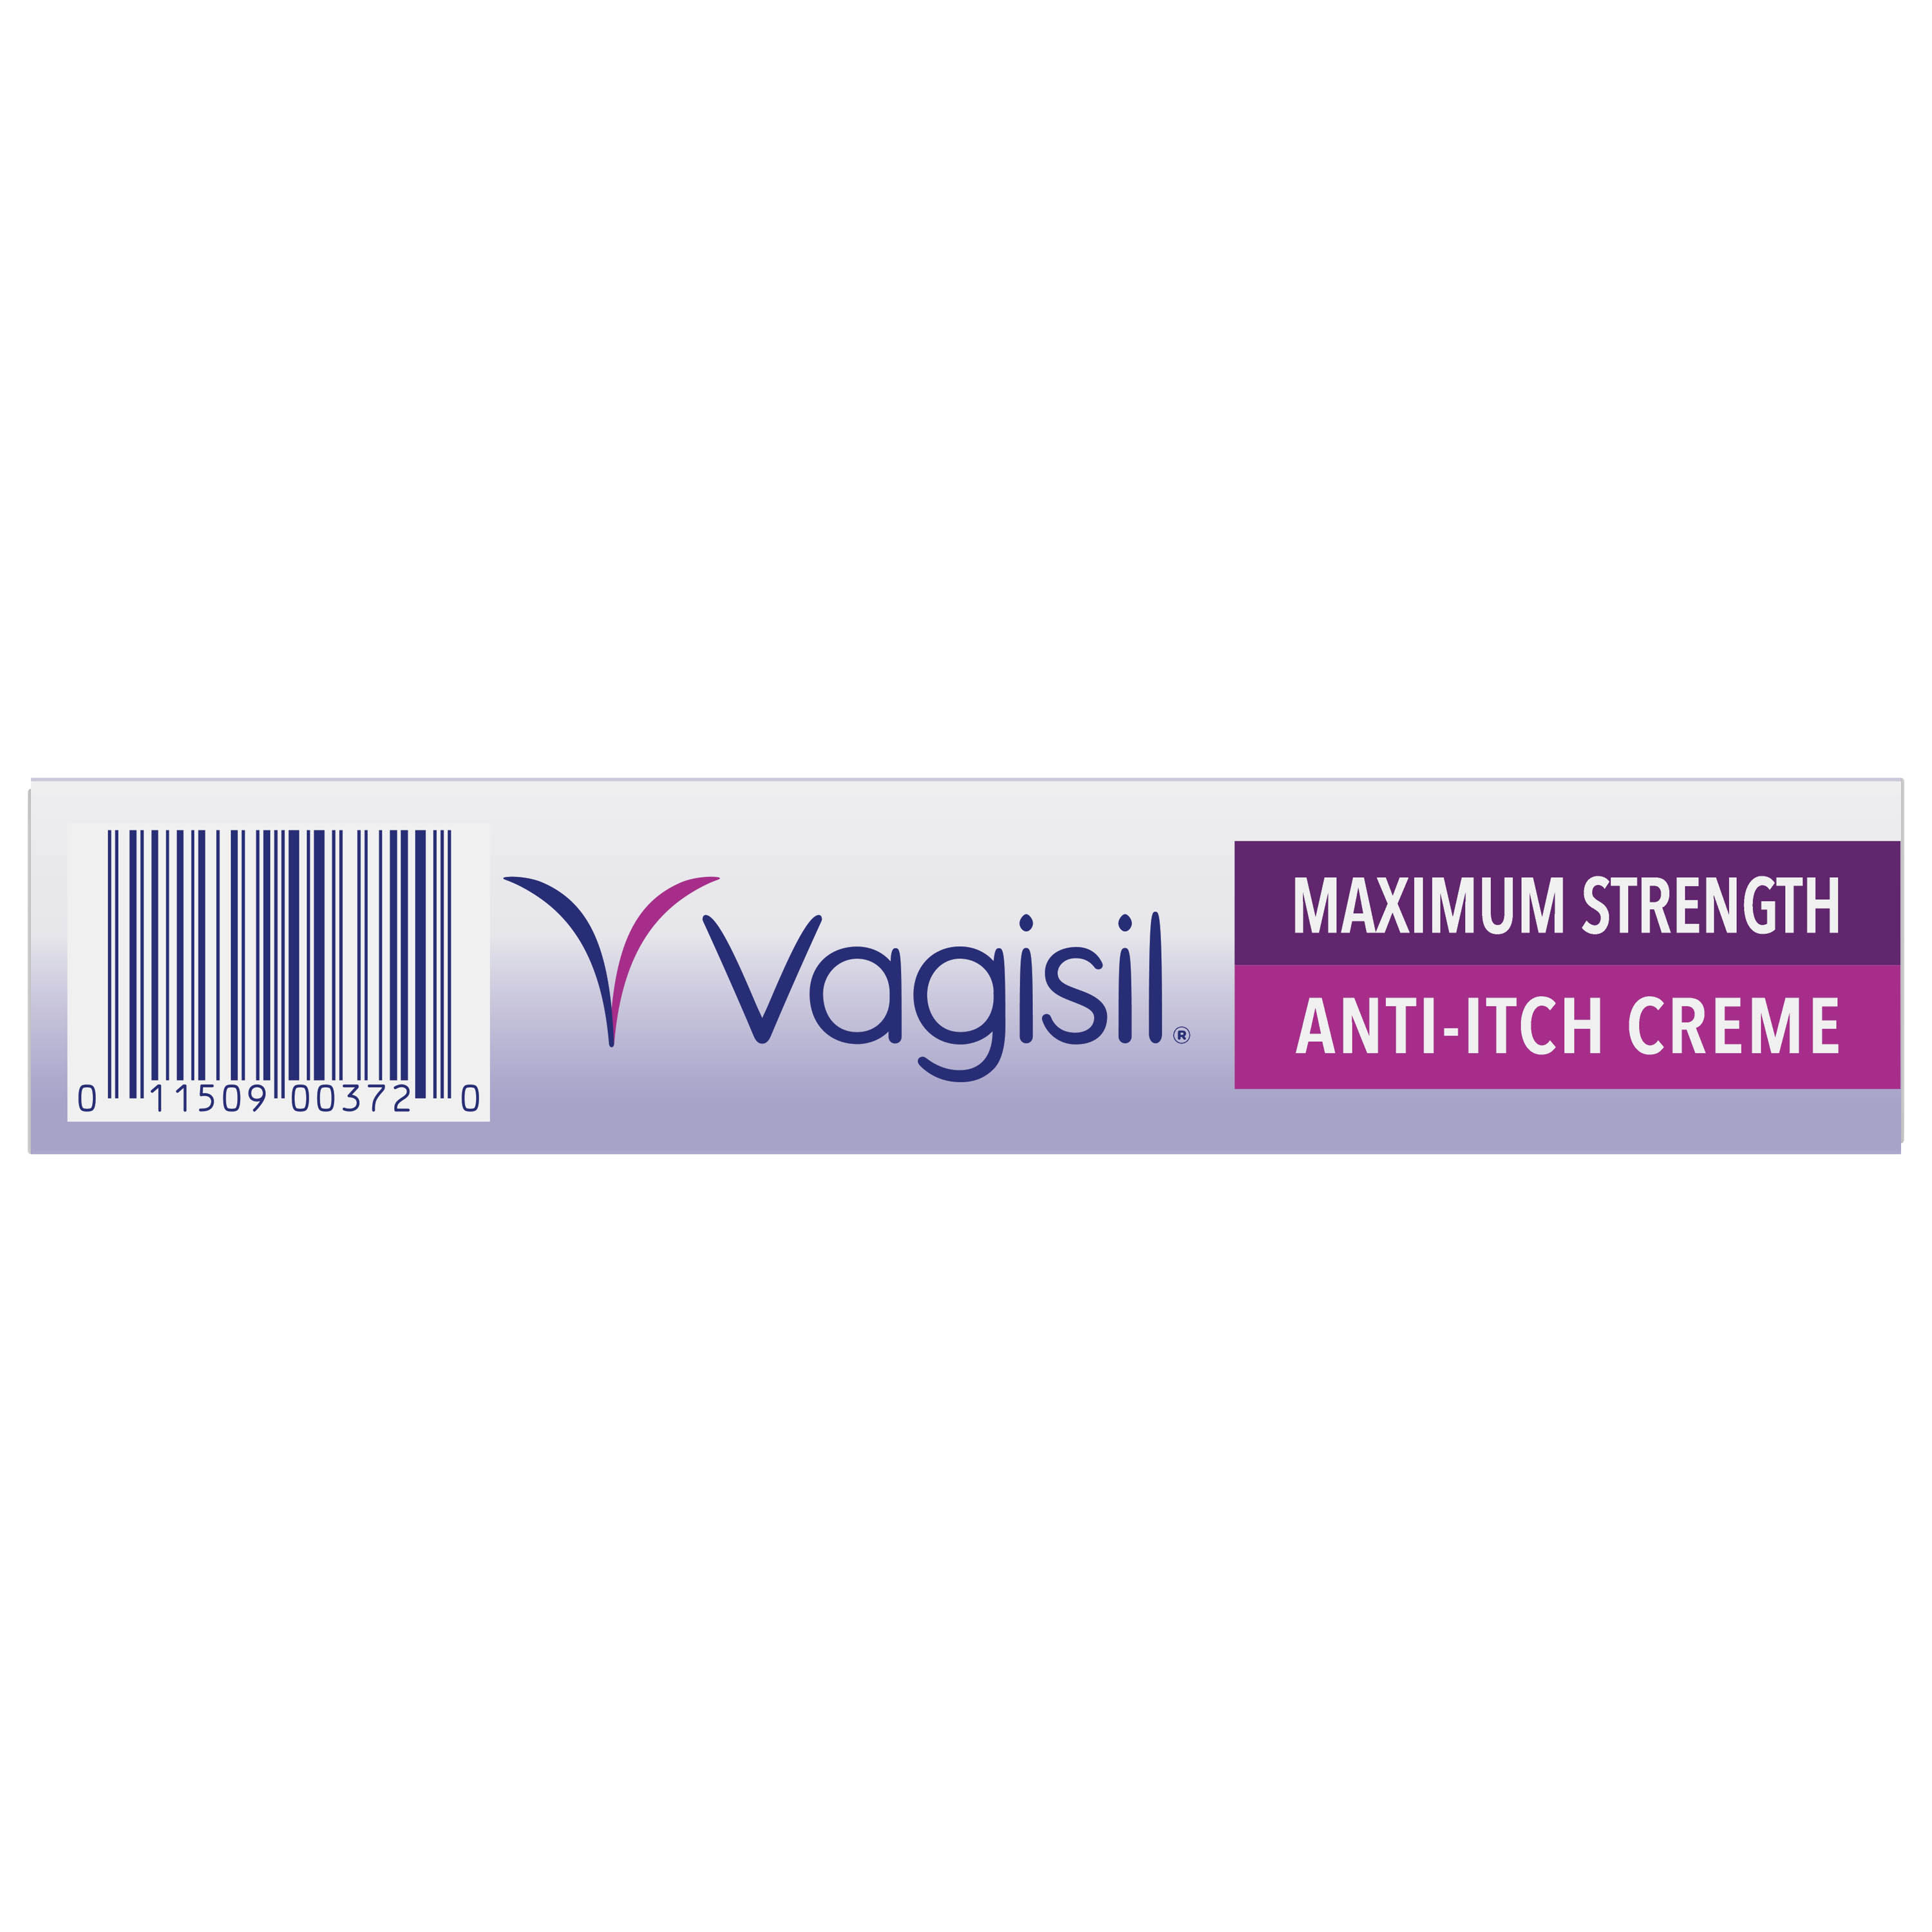 Information true i have vagisil on and my vagina still itches necessary words